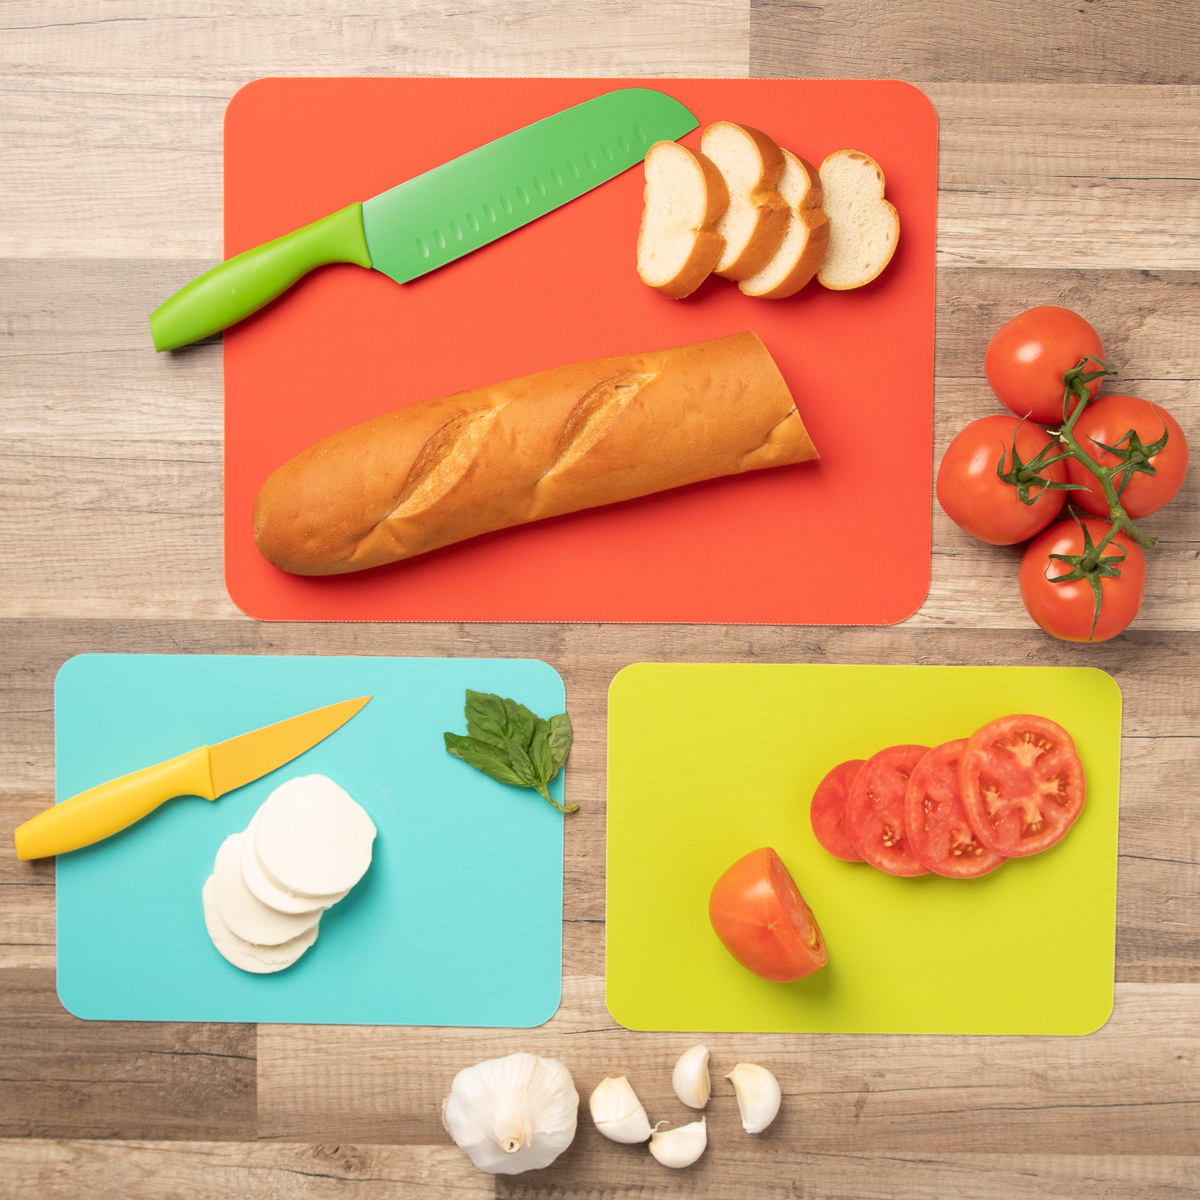 a large orange and small teal and green cutting boards on a counter with bread, tomatoes, garlic, and cheese